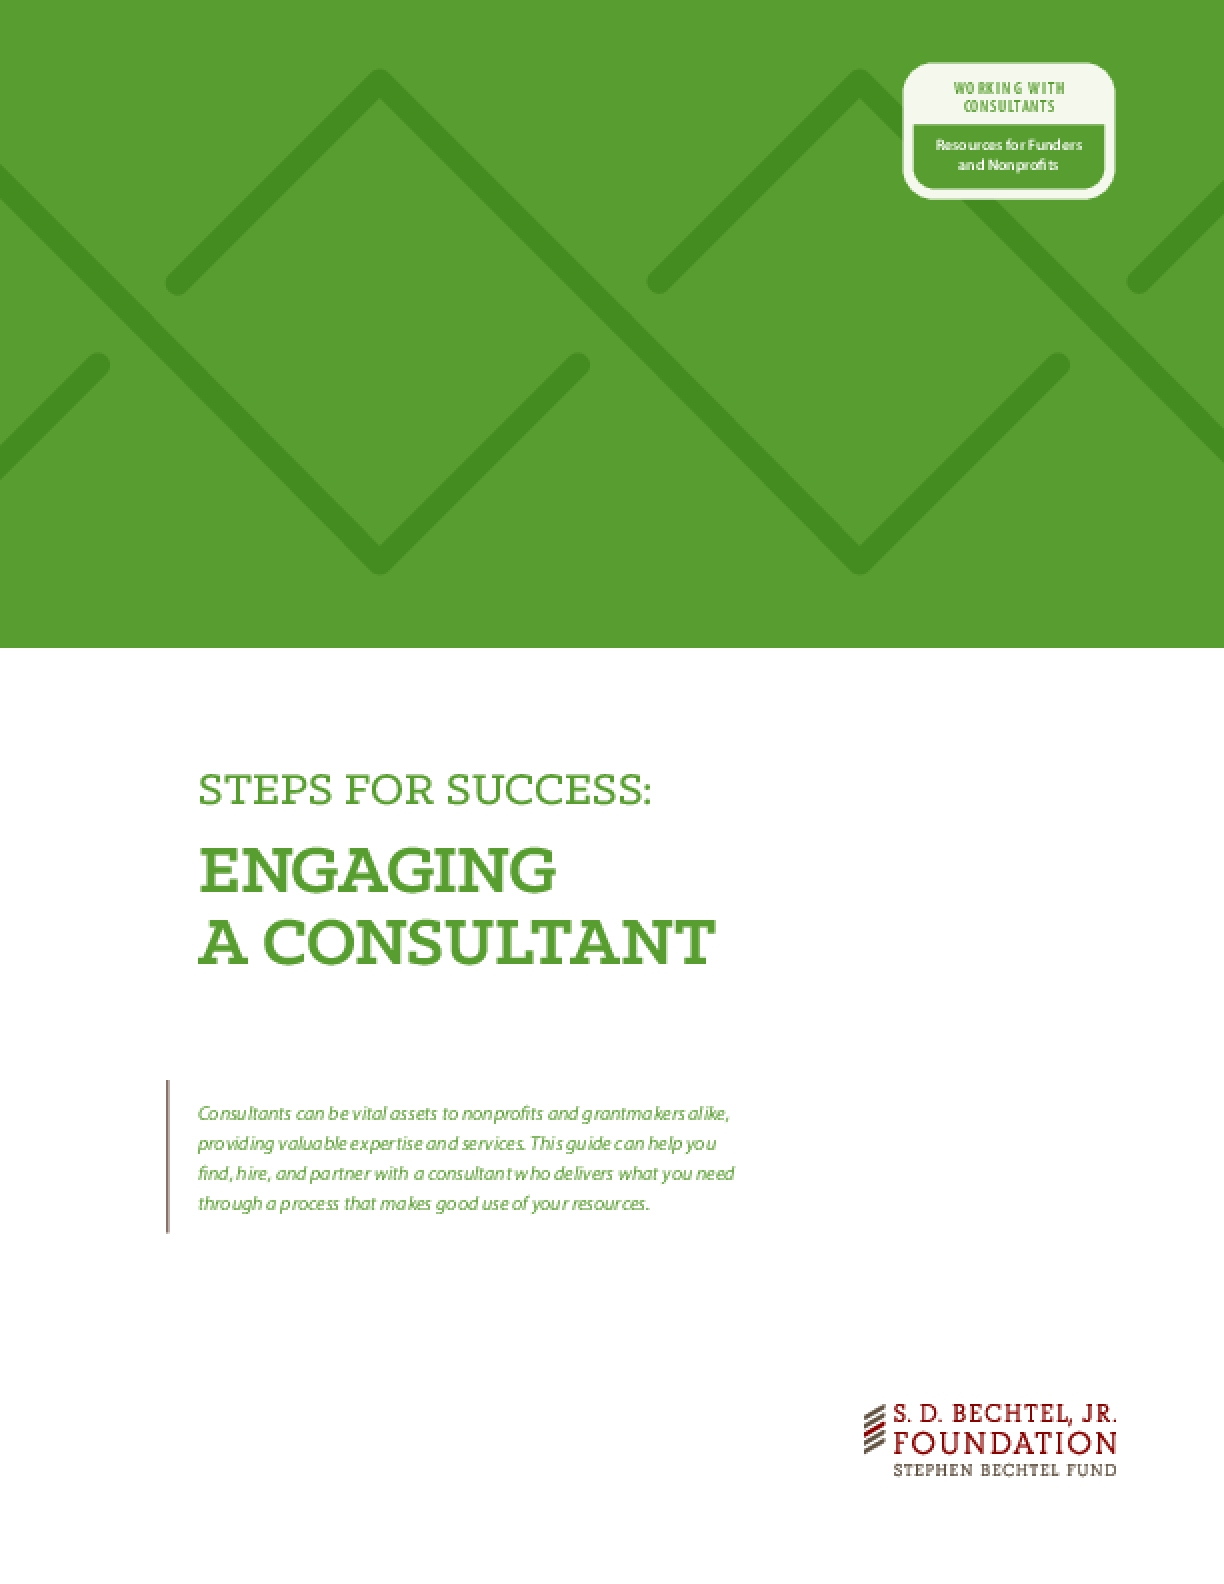 Steps for Success: Engaging a Consultant